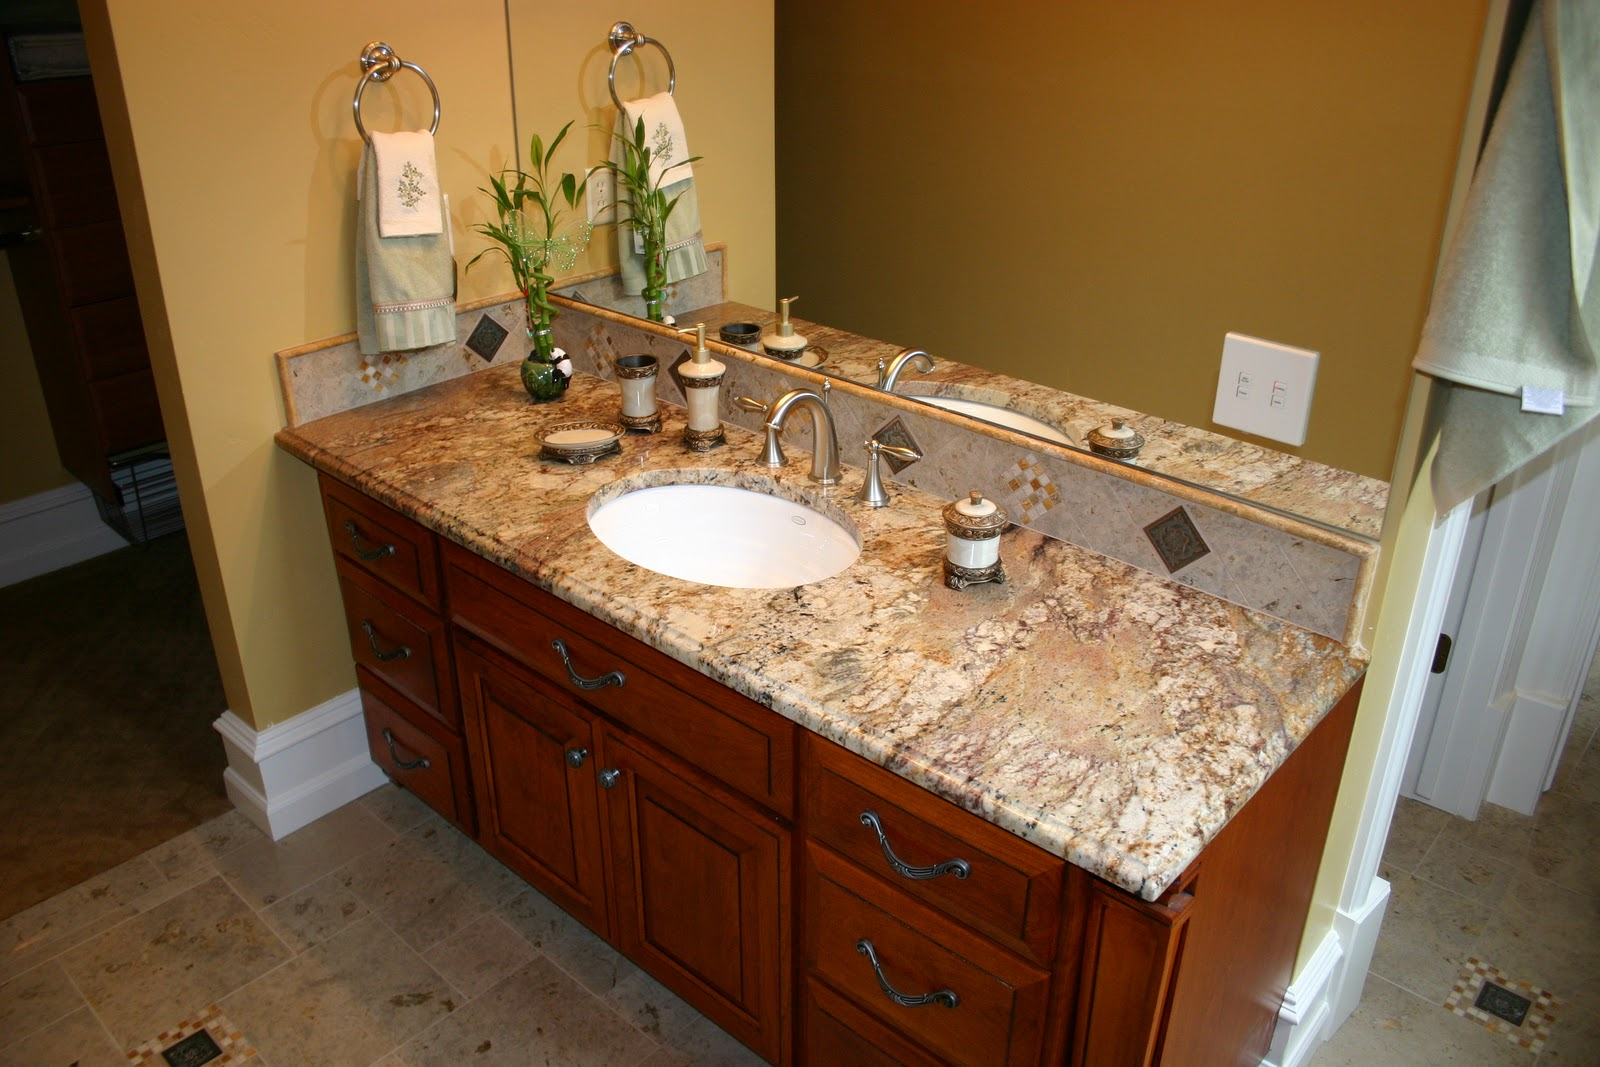 Natural Typhoon Bordeaux Granite Bath From Mgs By Design Granite Typhoon Bordeaux Granite Bath From Mgs By Design Typhoon Bordeaux Granite Cherry Cabinets Typhoon Bordeaux Granite Kitchen houzz-02 Typhoon Bordeaux Granite